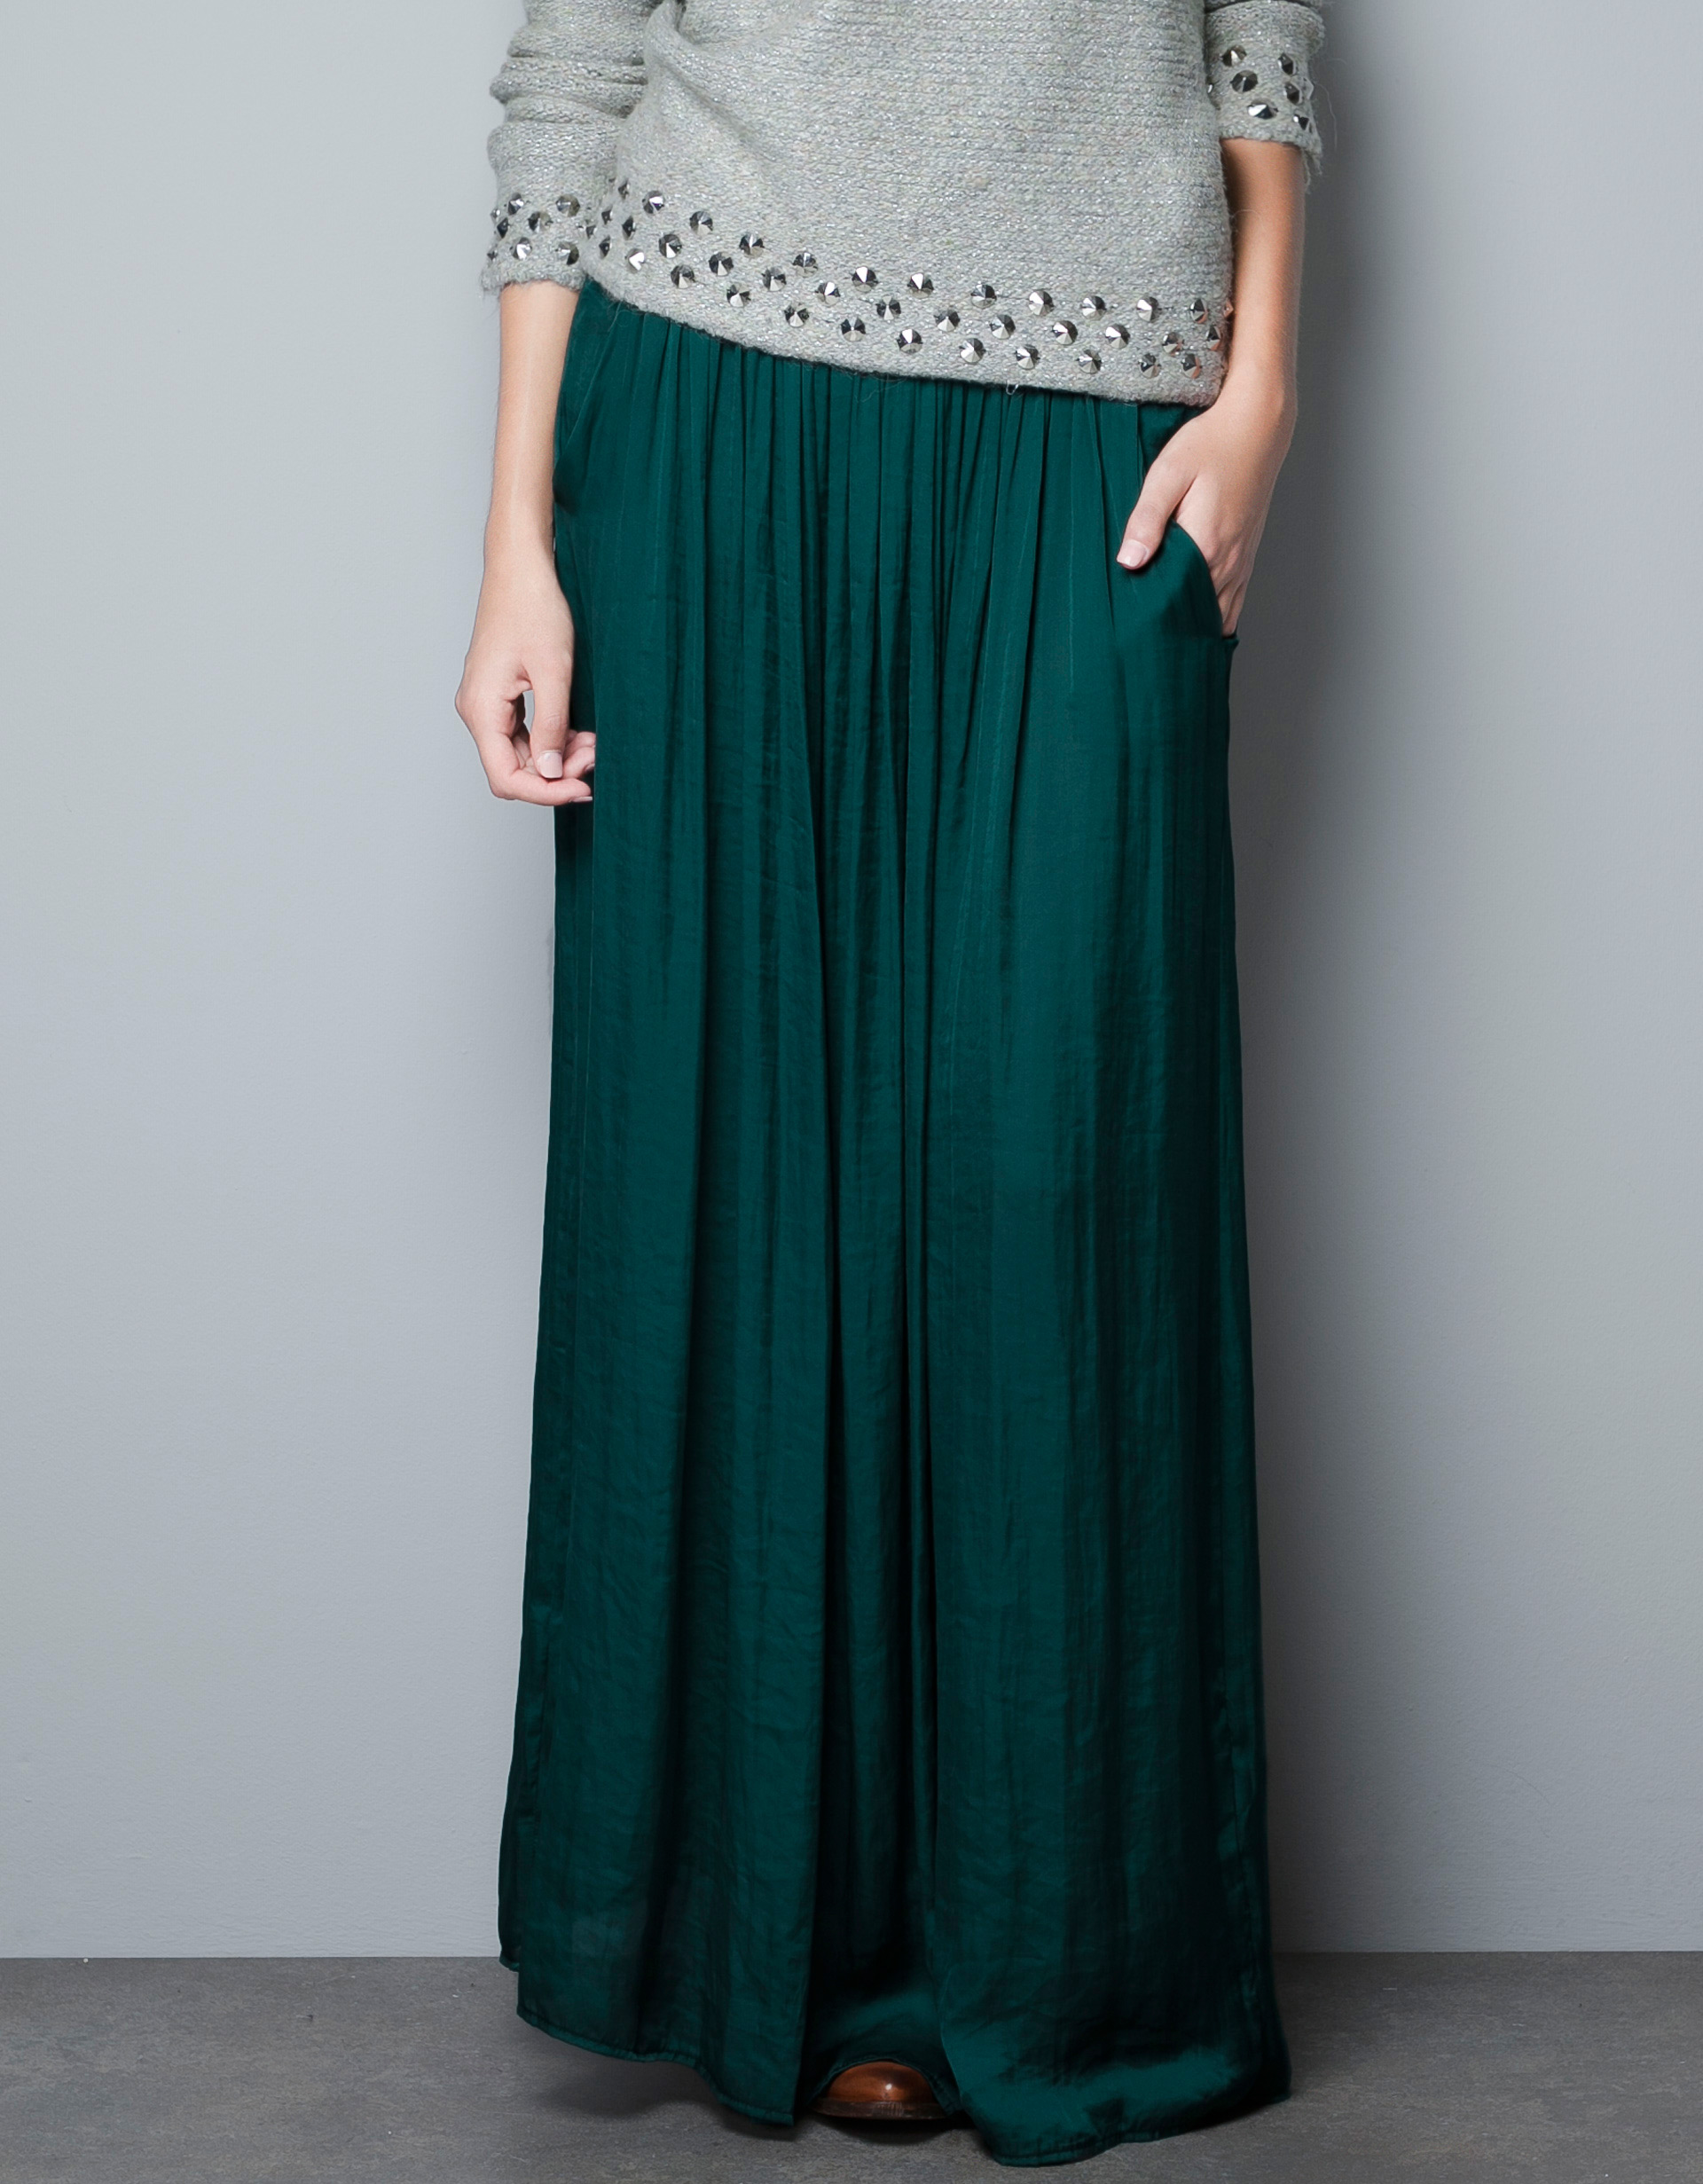 Zara Long Skirt with Pockets in Green | Lyst